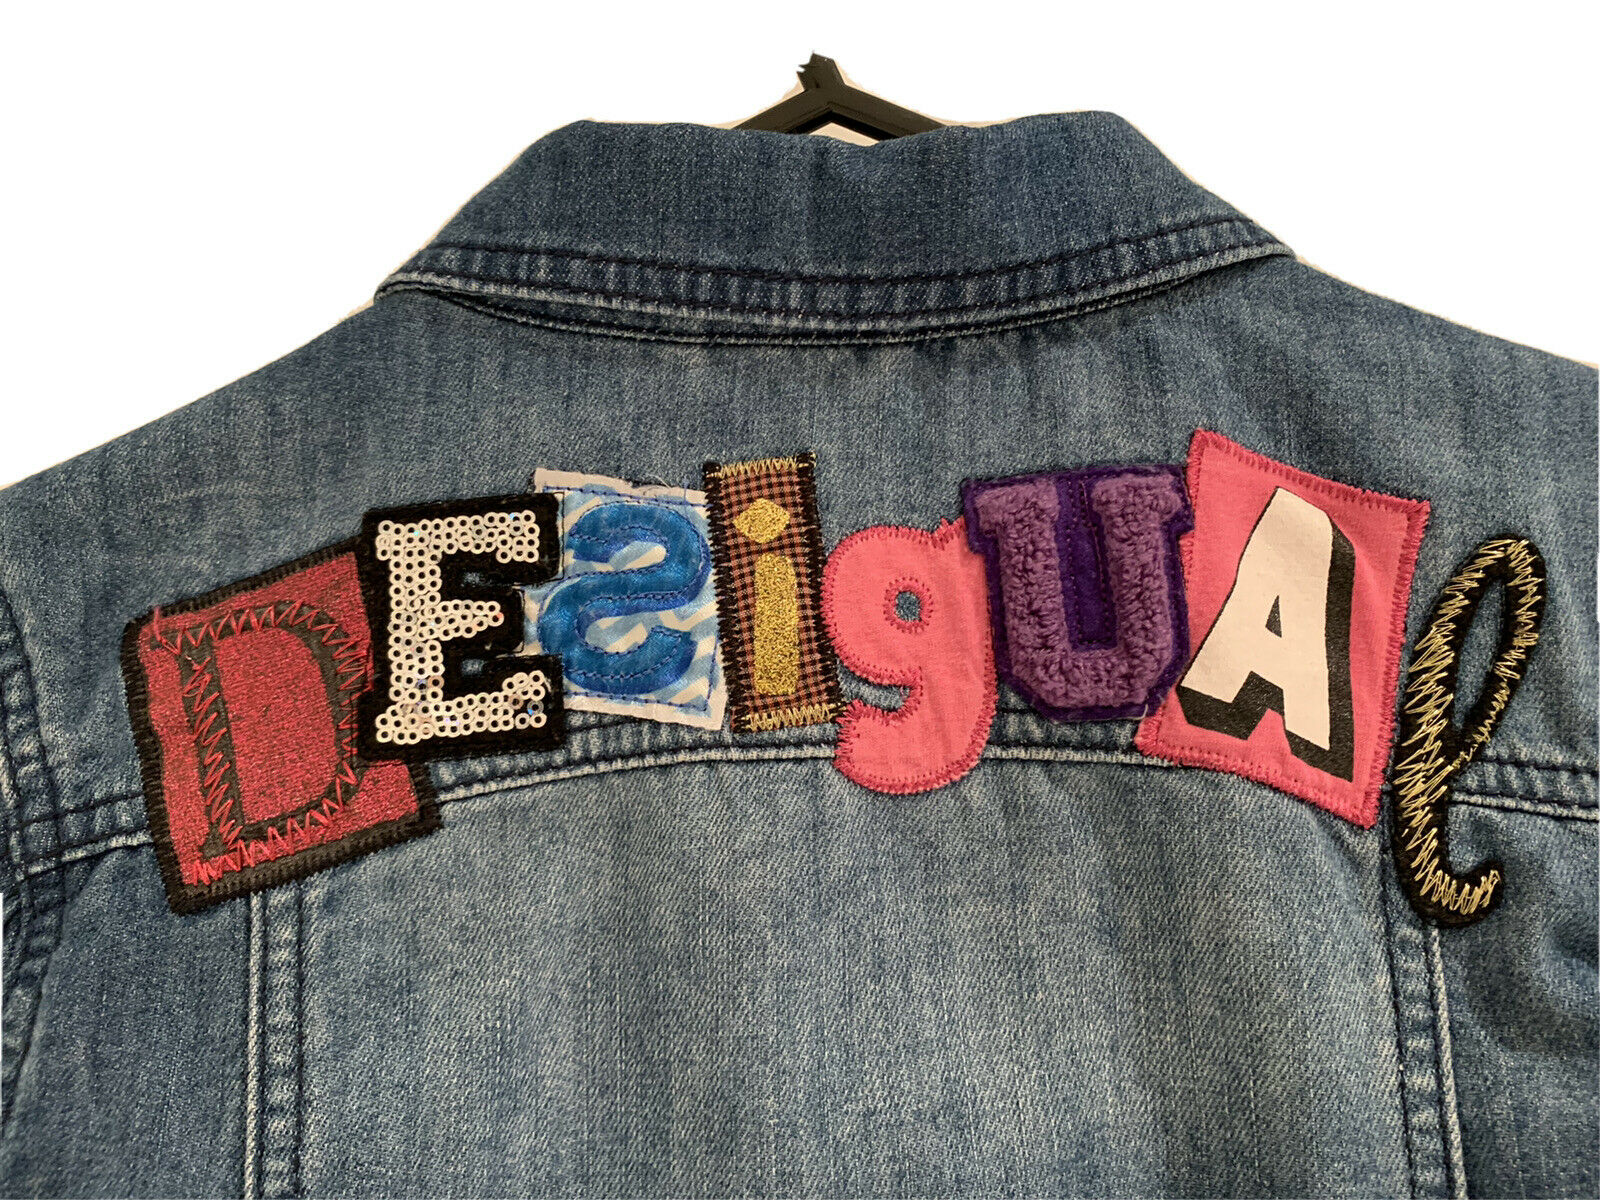 DESIGUAL GIRLS EMBROIDERED DENIM JACKET Size 11/12 years, Perfect Condition